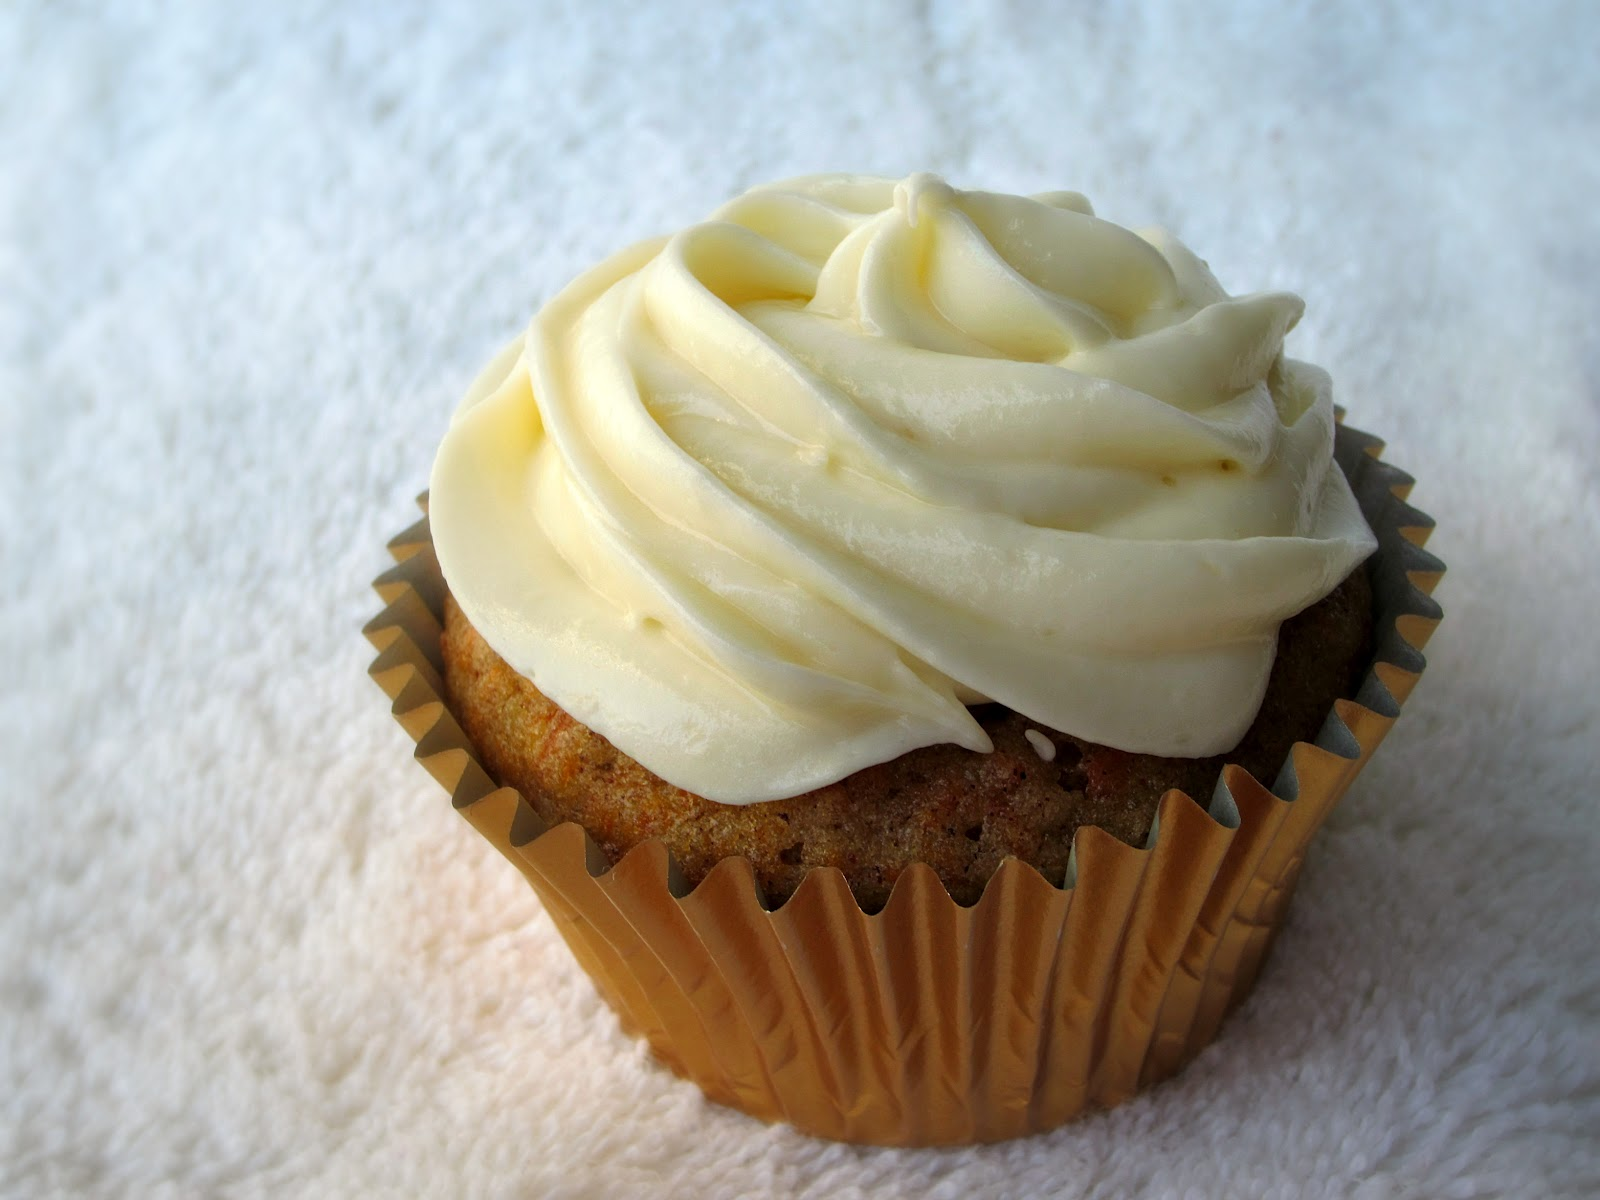 Sugarcoated: Carrot Cake Cupcakes